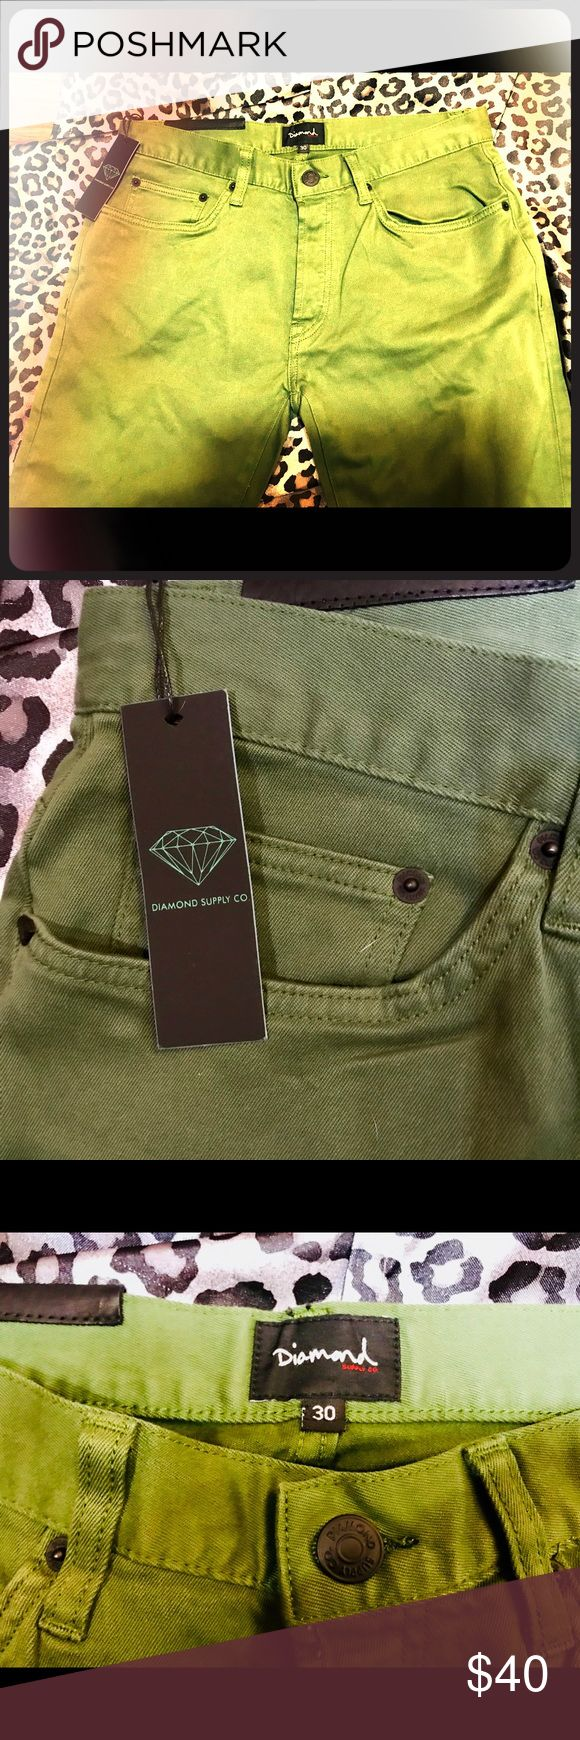 Women's jeans Diamond Supply Co. brand new soft denim straight leg jeans,amazingly airy comfortable material! Great neutral shade of army green Jeans Straight Leg